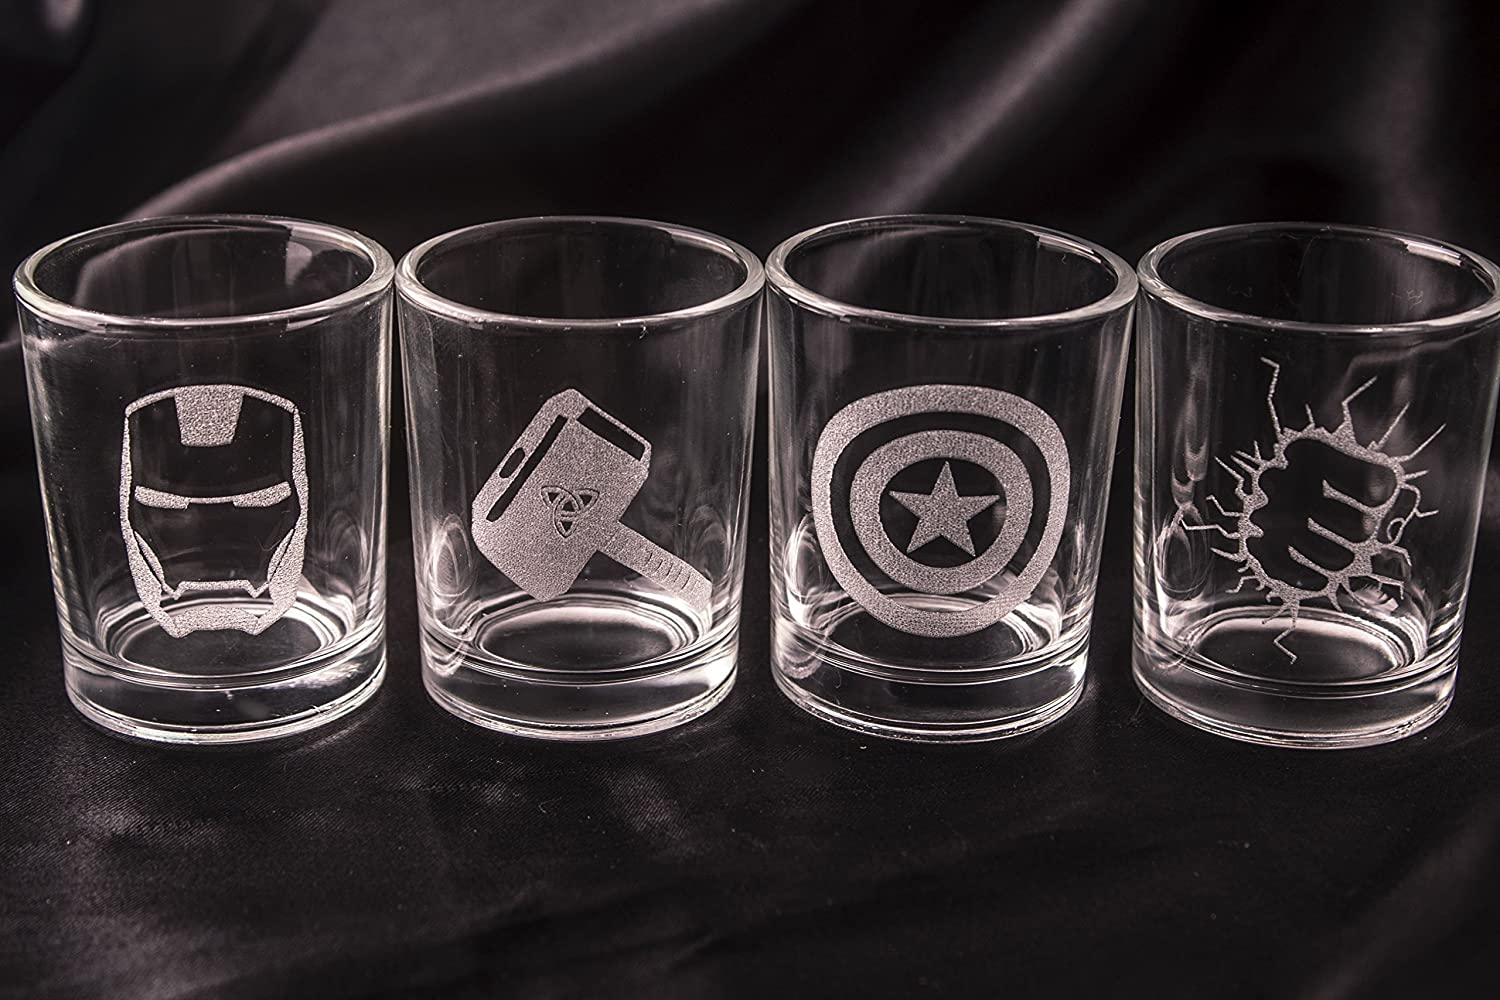 Avengers Shot Glasses - Set of 4 Avengers Logos